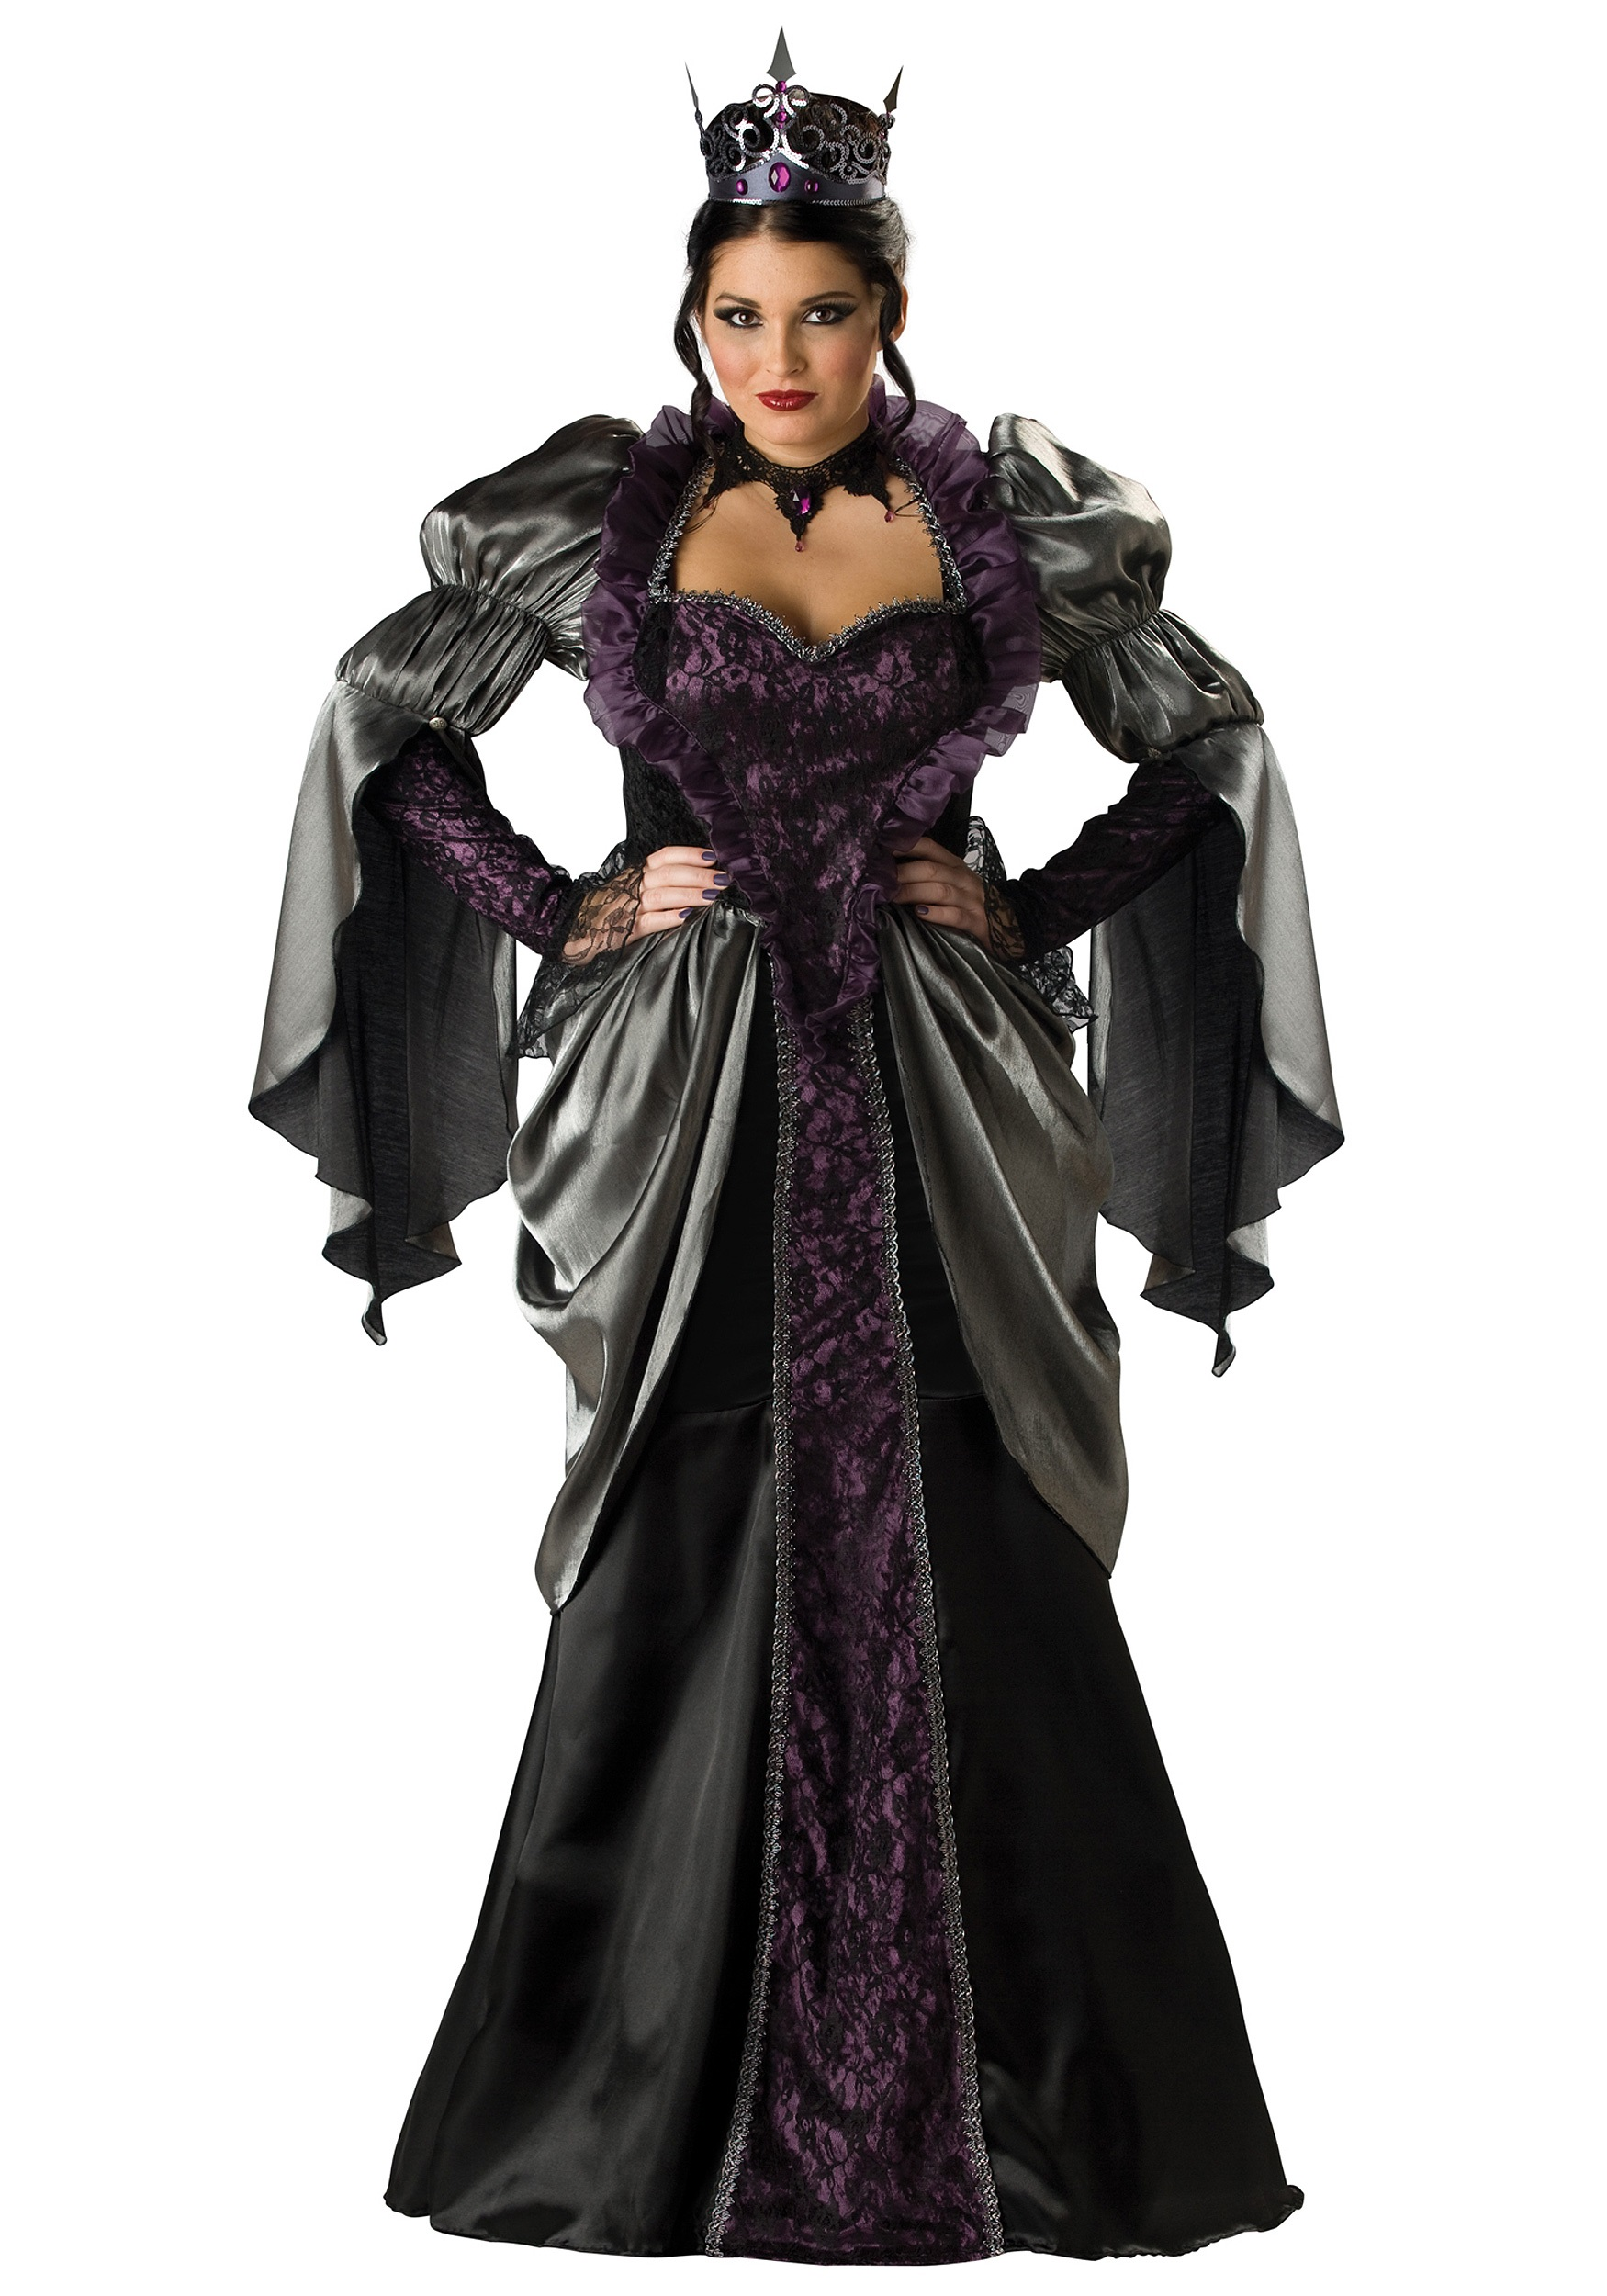 plus size wicked queen costume - evil queen costumes for plus size